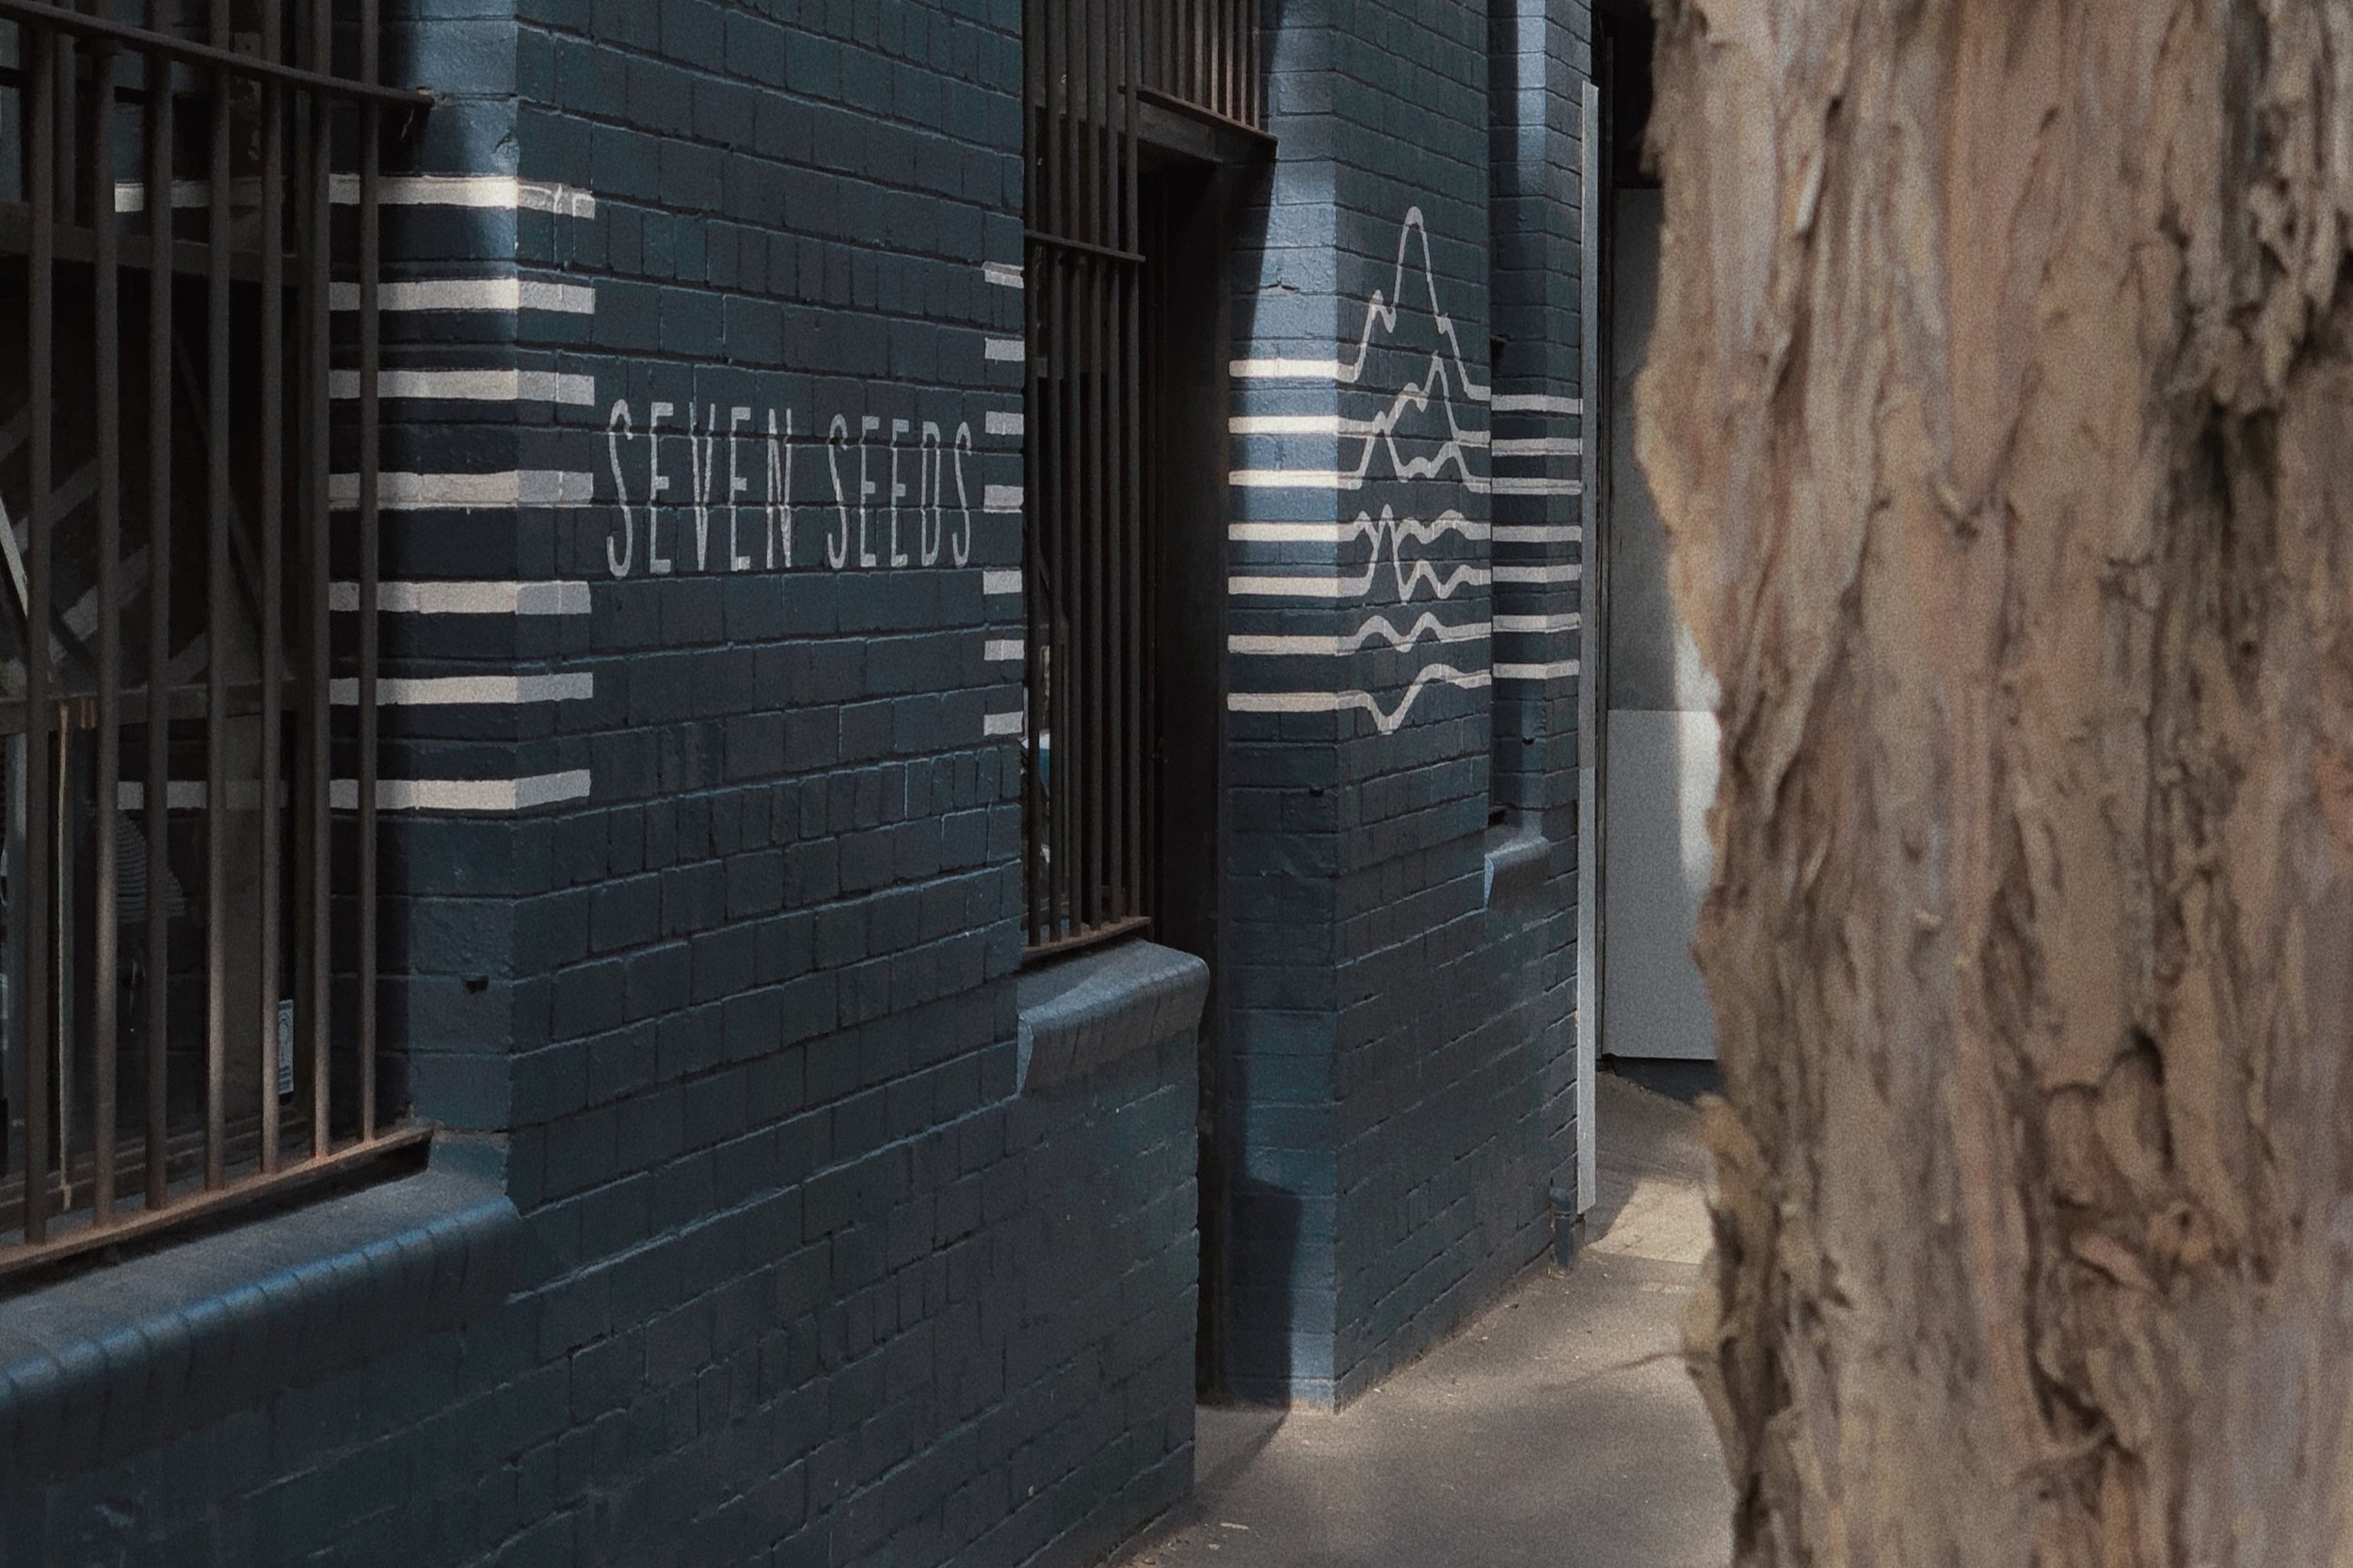 Seven Seeds - Coffee, Interior DesignMelbourne, AustraliaSeven Seeds takes its name from the precious cargo which Baba Budan smuggled out of Yemen and into India during the 17th century. By strapping seven seeds of fertile coffee to his waist, Brother Budan broke through the tightly regulated system which had, until then, kept coffee cultivation within the confines of the Arabic world. Because of Baba Budan and his determination to spread coffee around the world, we are now able to source beans from the Americas, Africa and Asia.